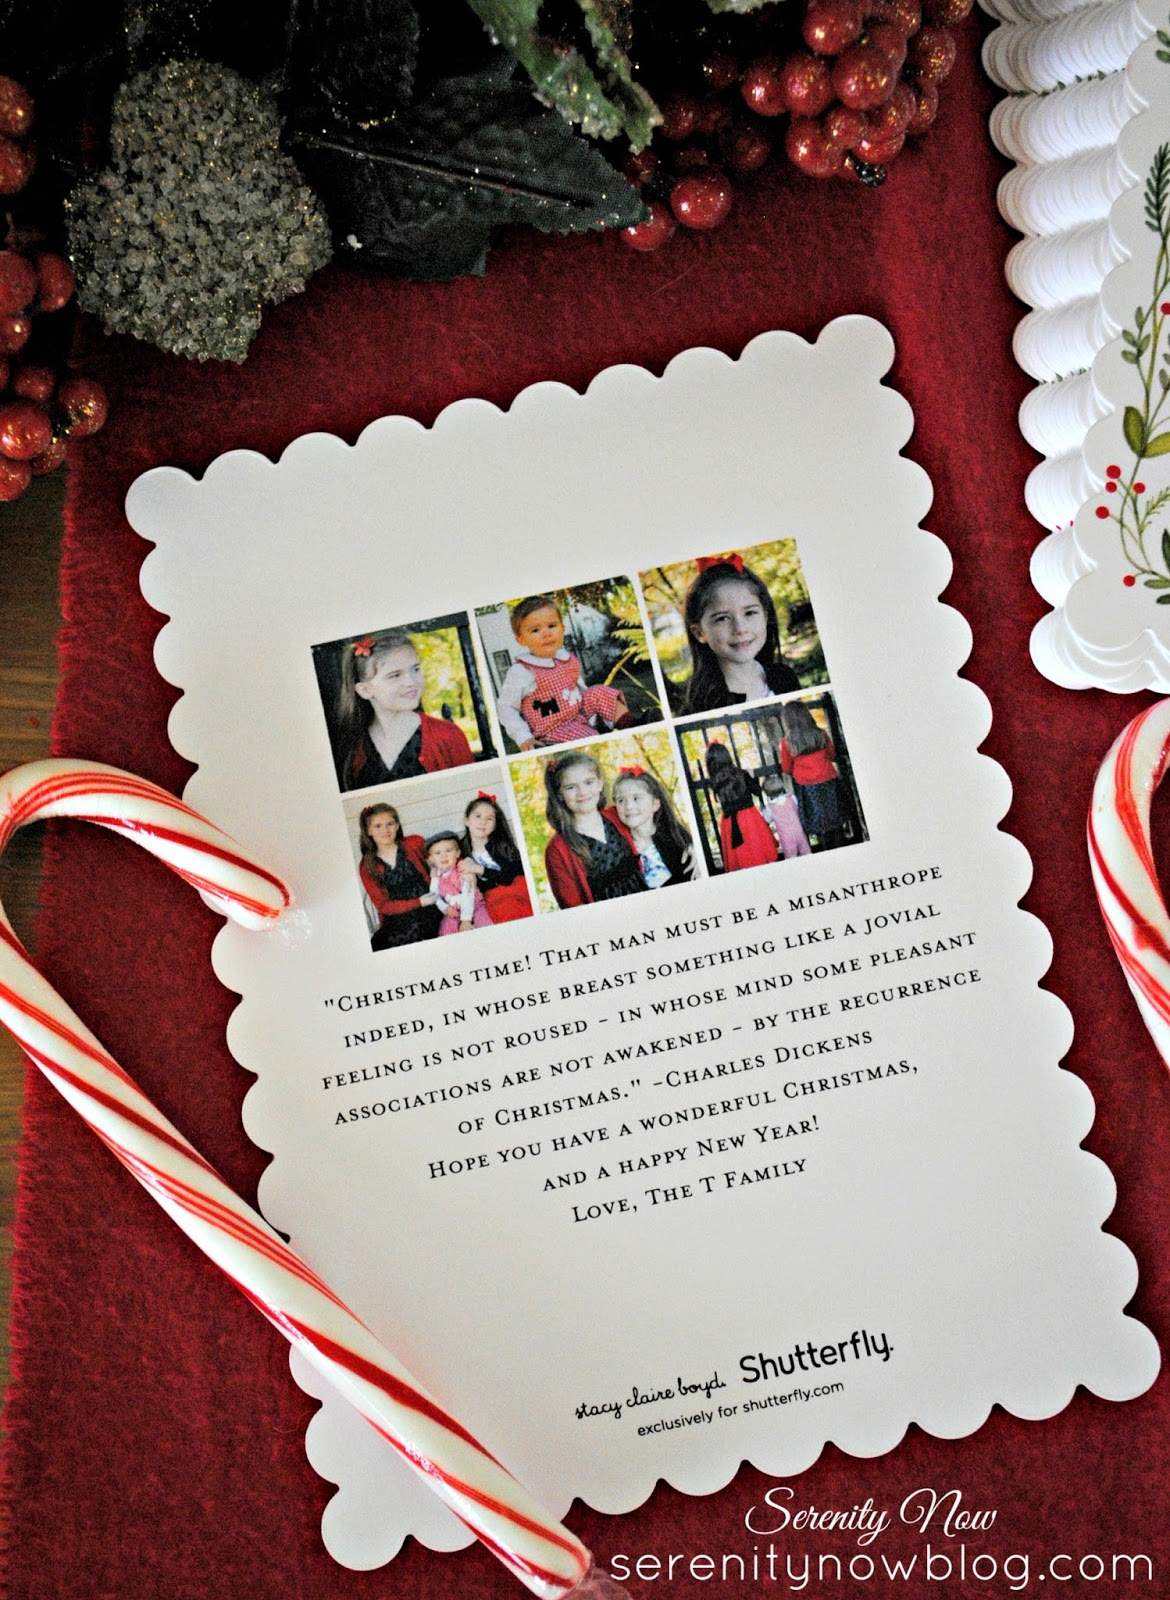 Serenity now family christmas card ideas 2015 shutterfly family christmas card ideas with shutterfly from serenity now m4hsunfo